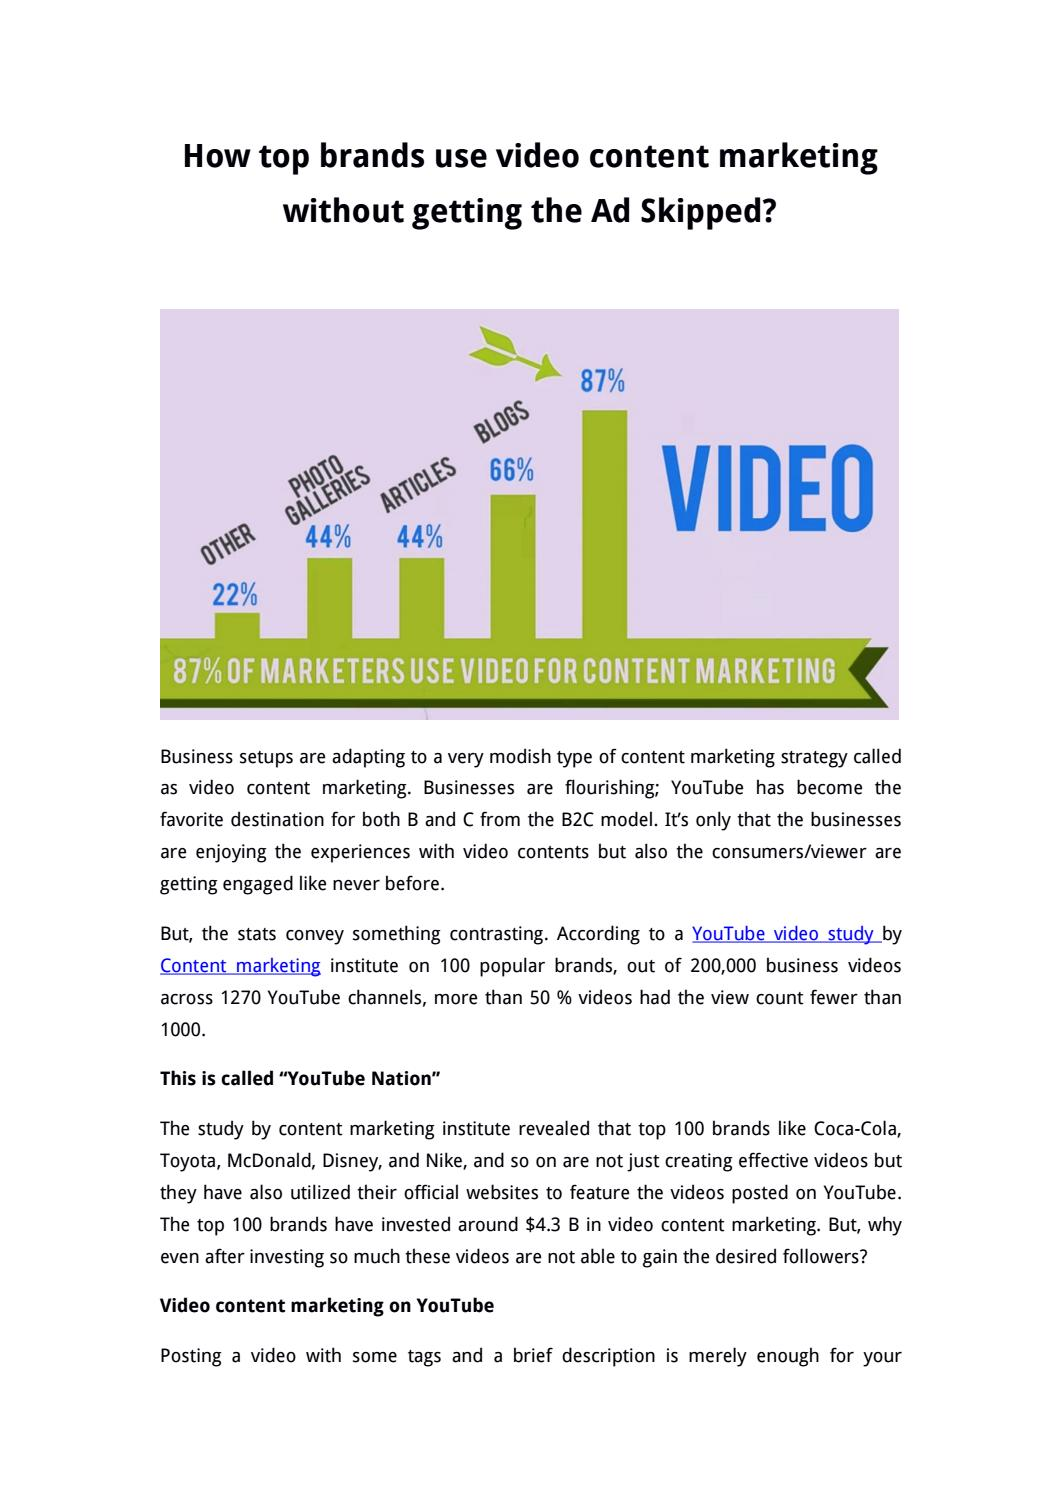 How top brands use video content marketing without getting